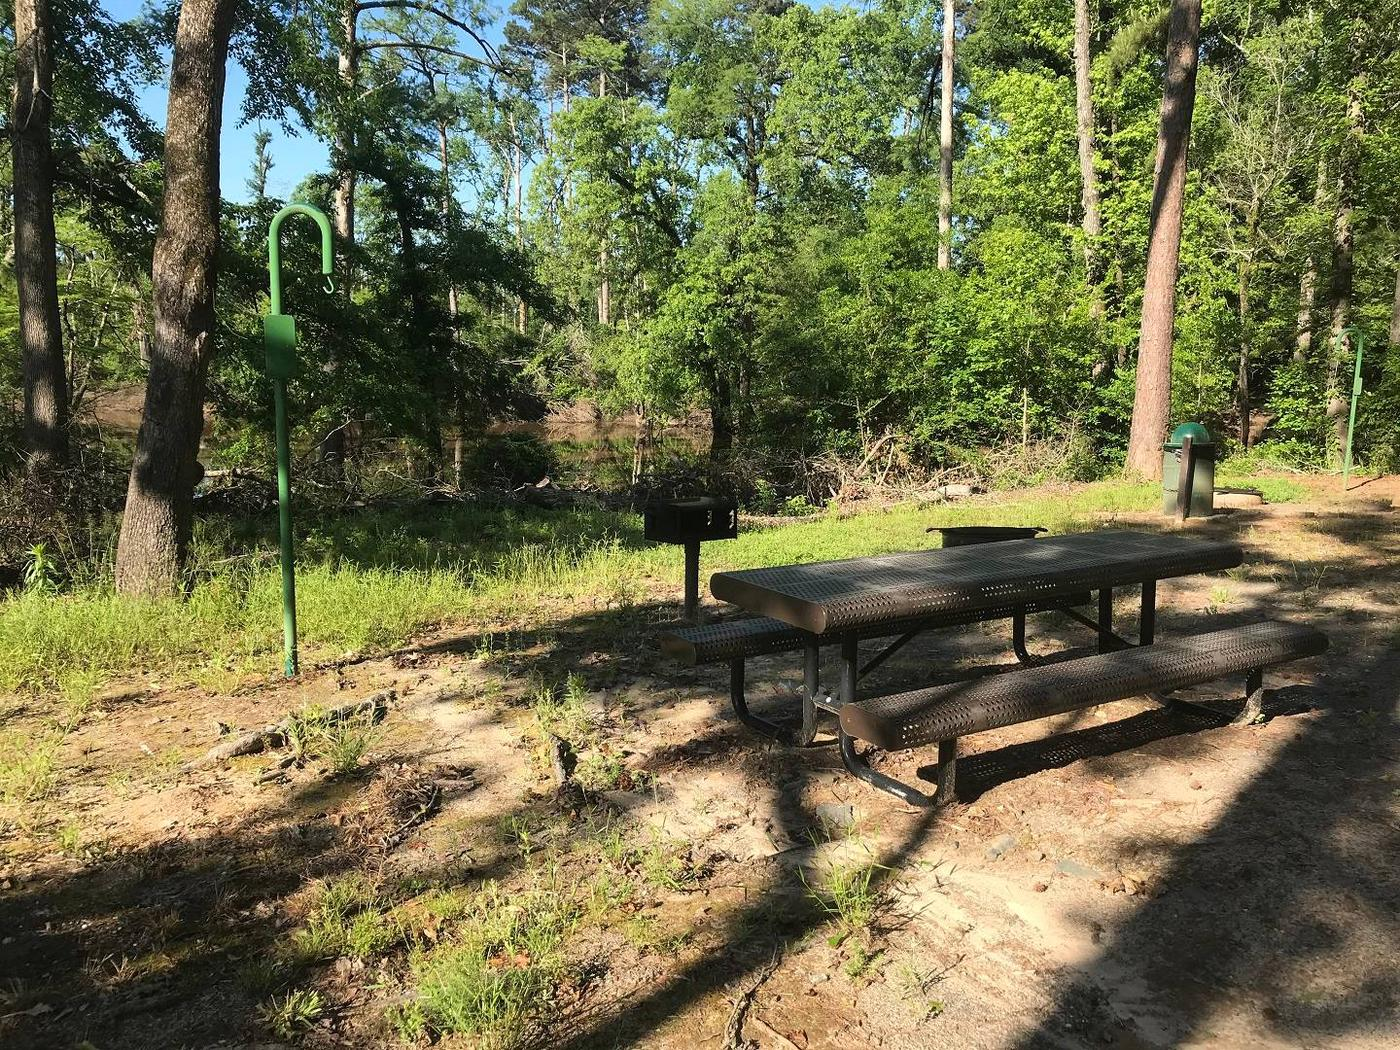 Campsite #6.Campsite #6. Tent site with the following amenities: fire-pit, grill, picnic table, lantern pole, trash can.  Located along bayou.